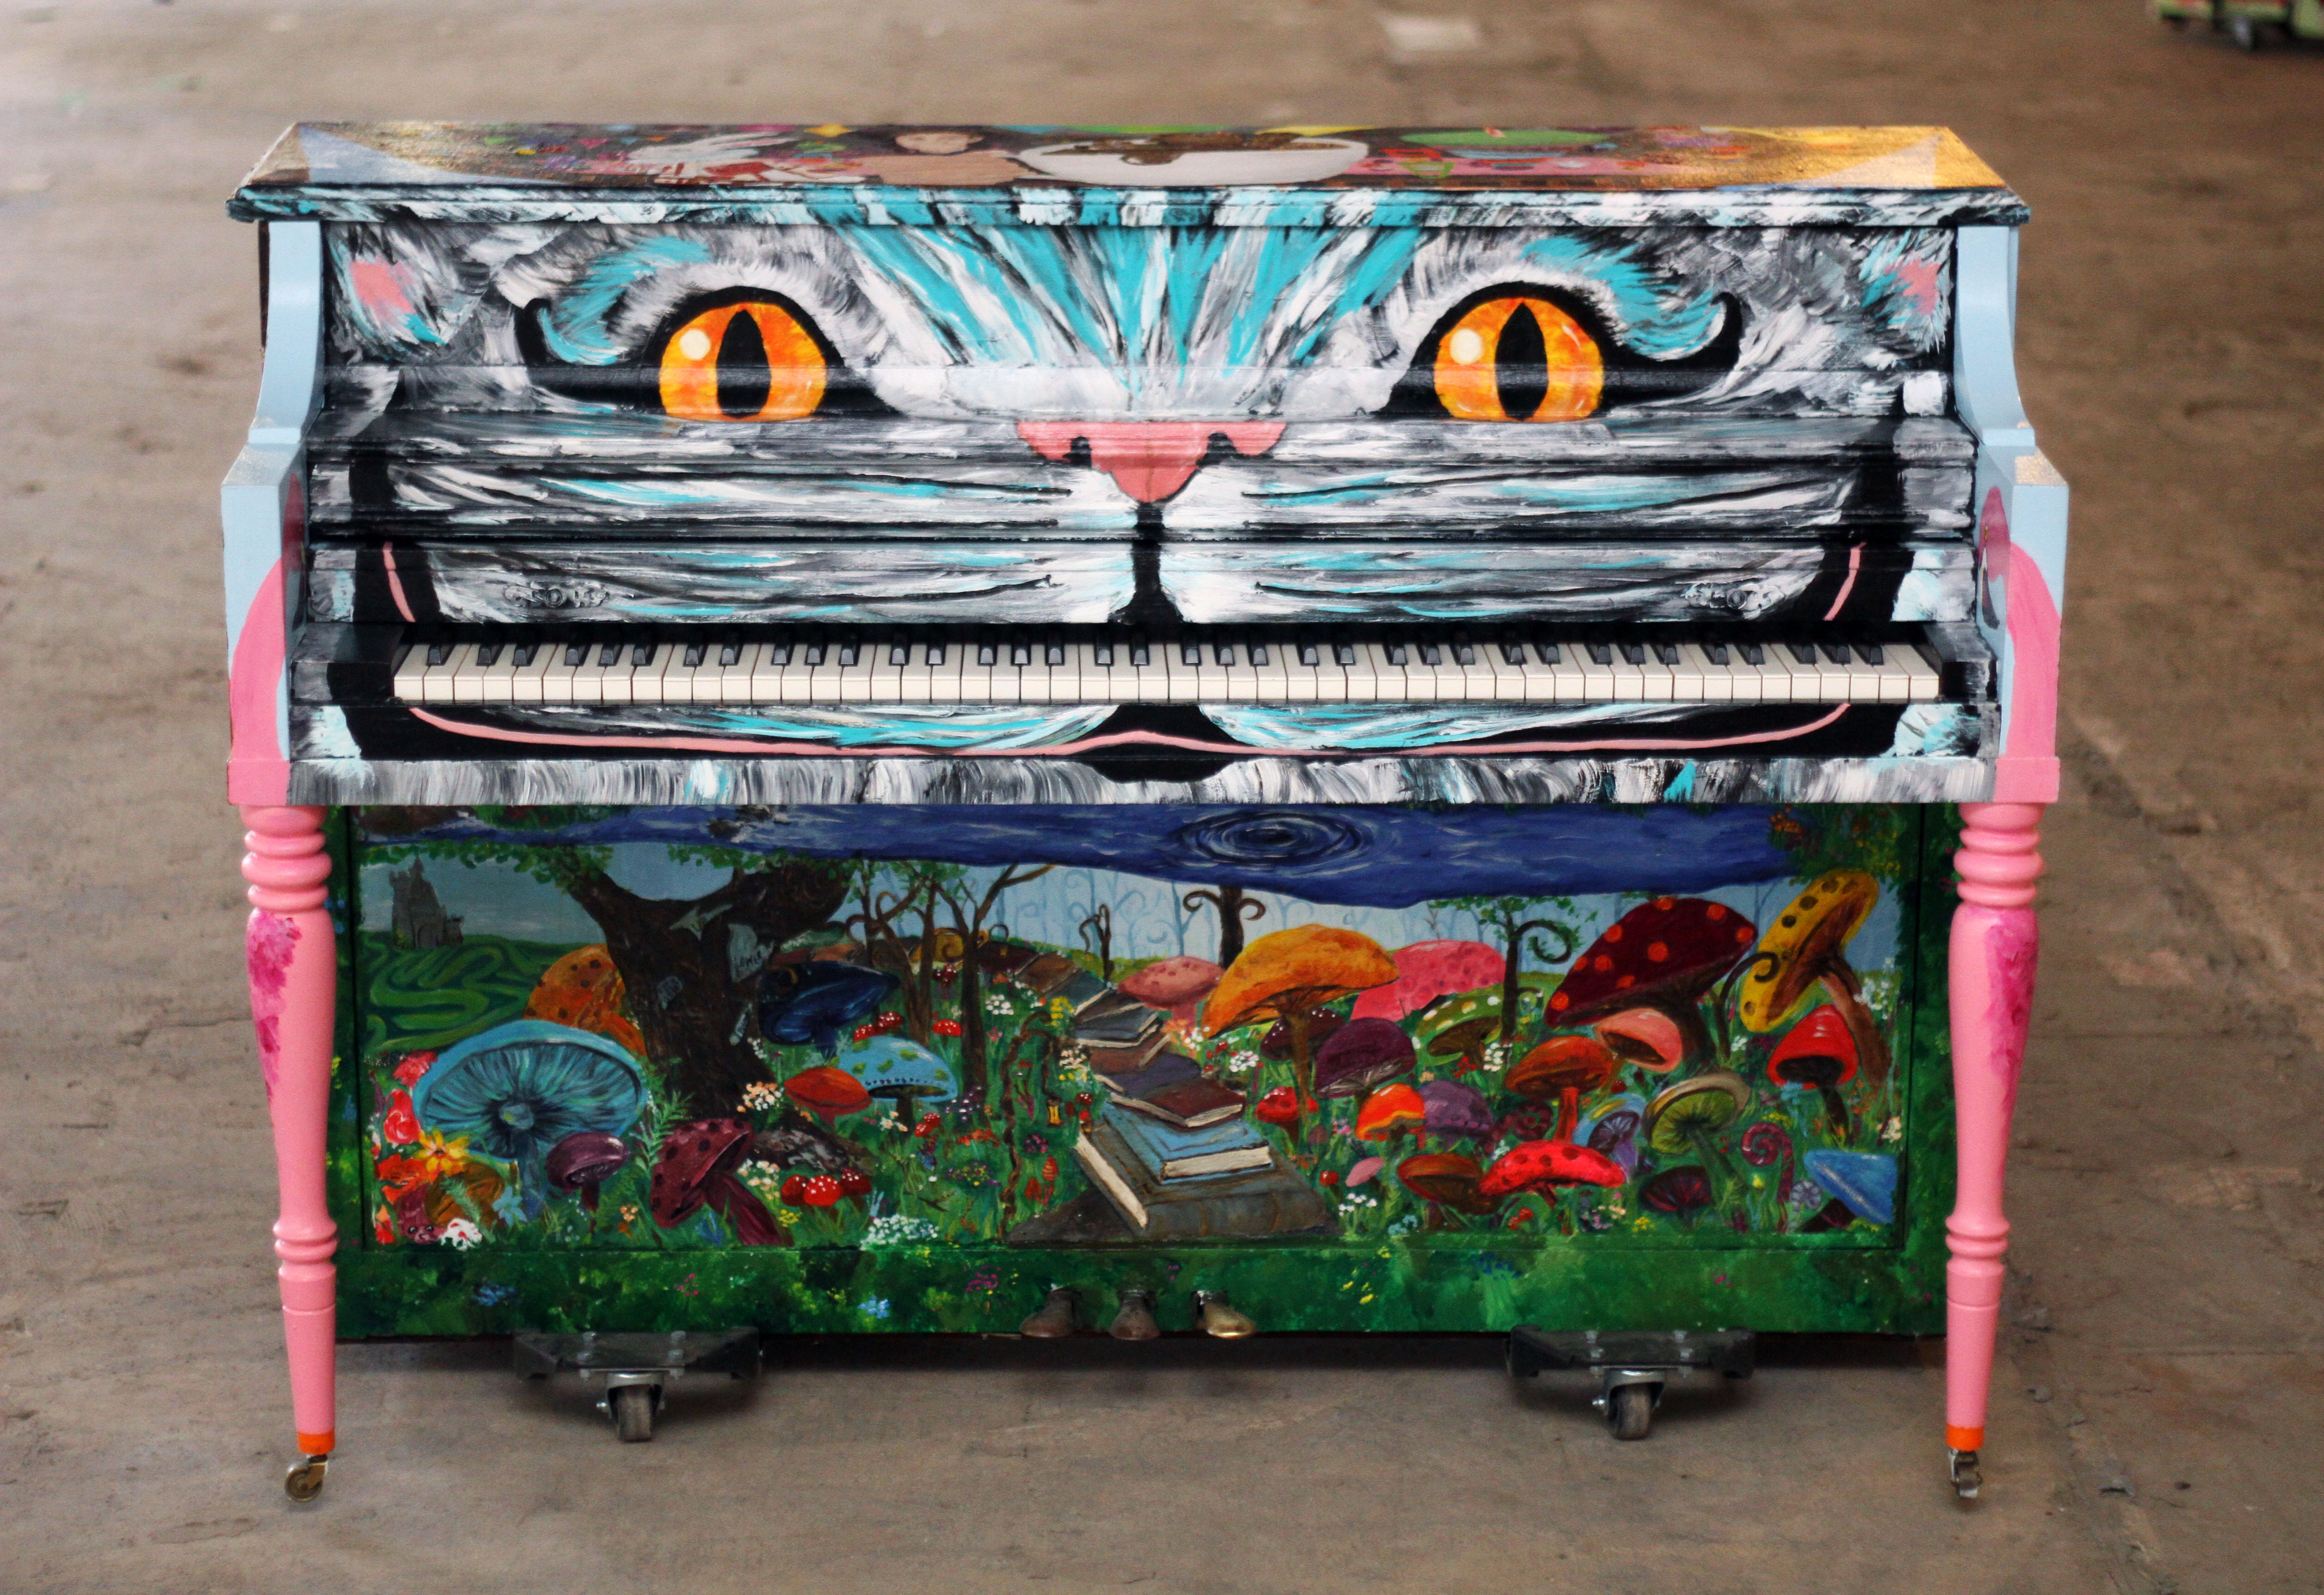 2018 Sing for Hope Pianos cat piano